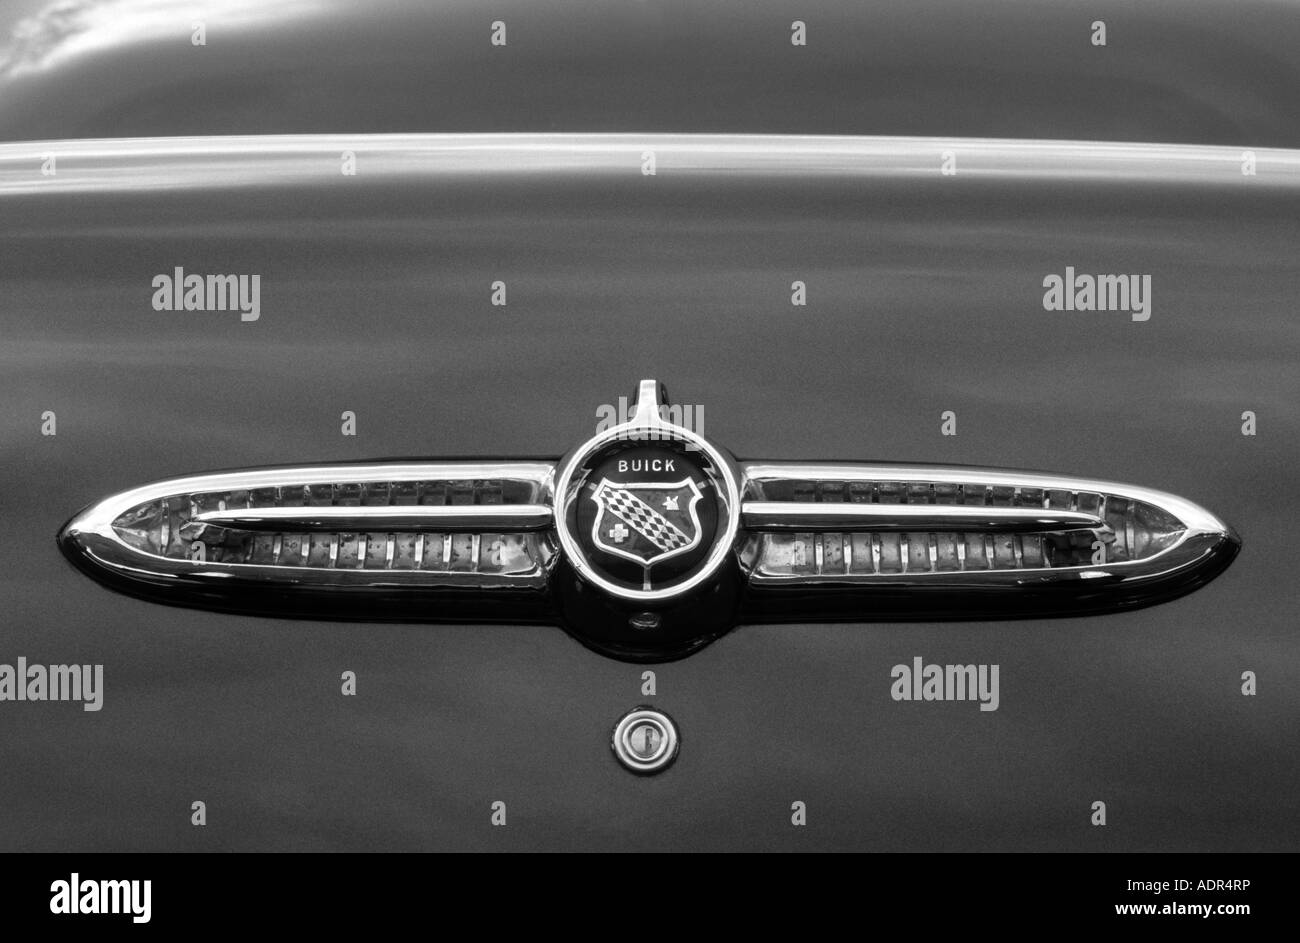 Buick Series 40 Special of 1955 - Stock Image